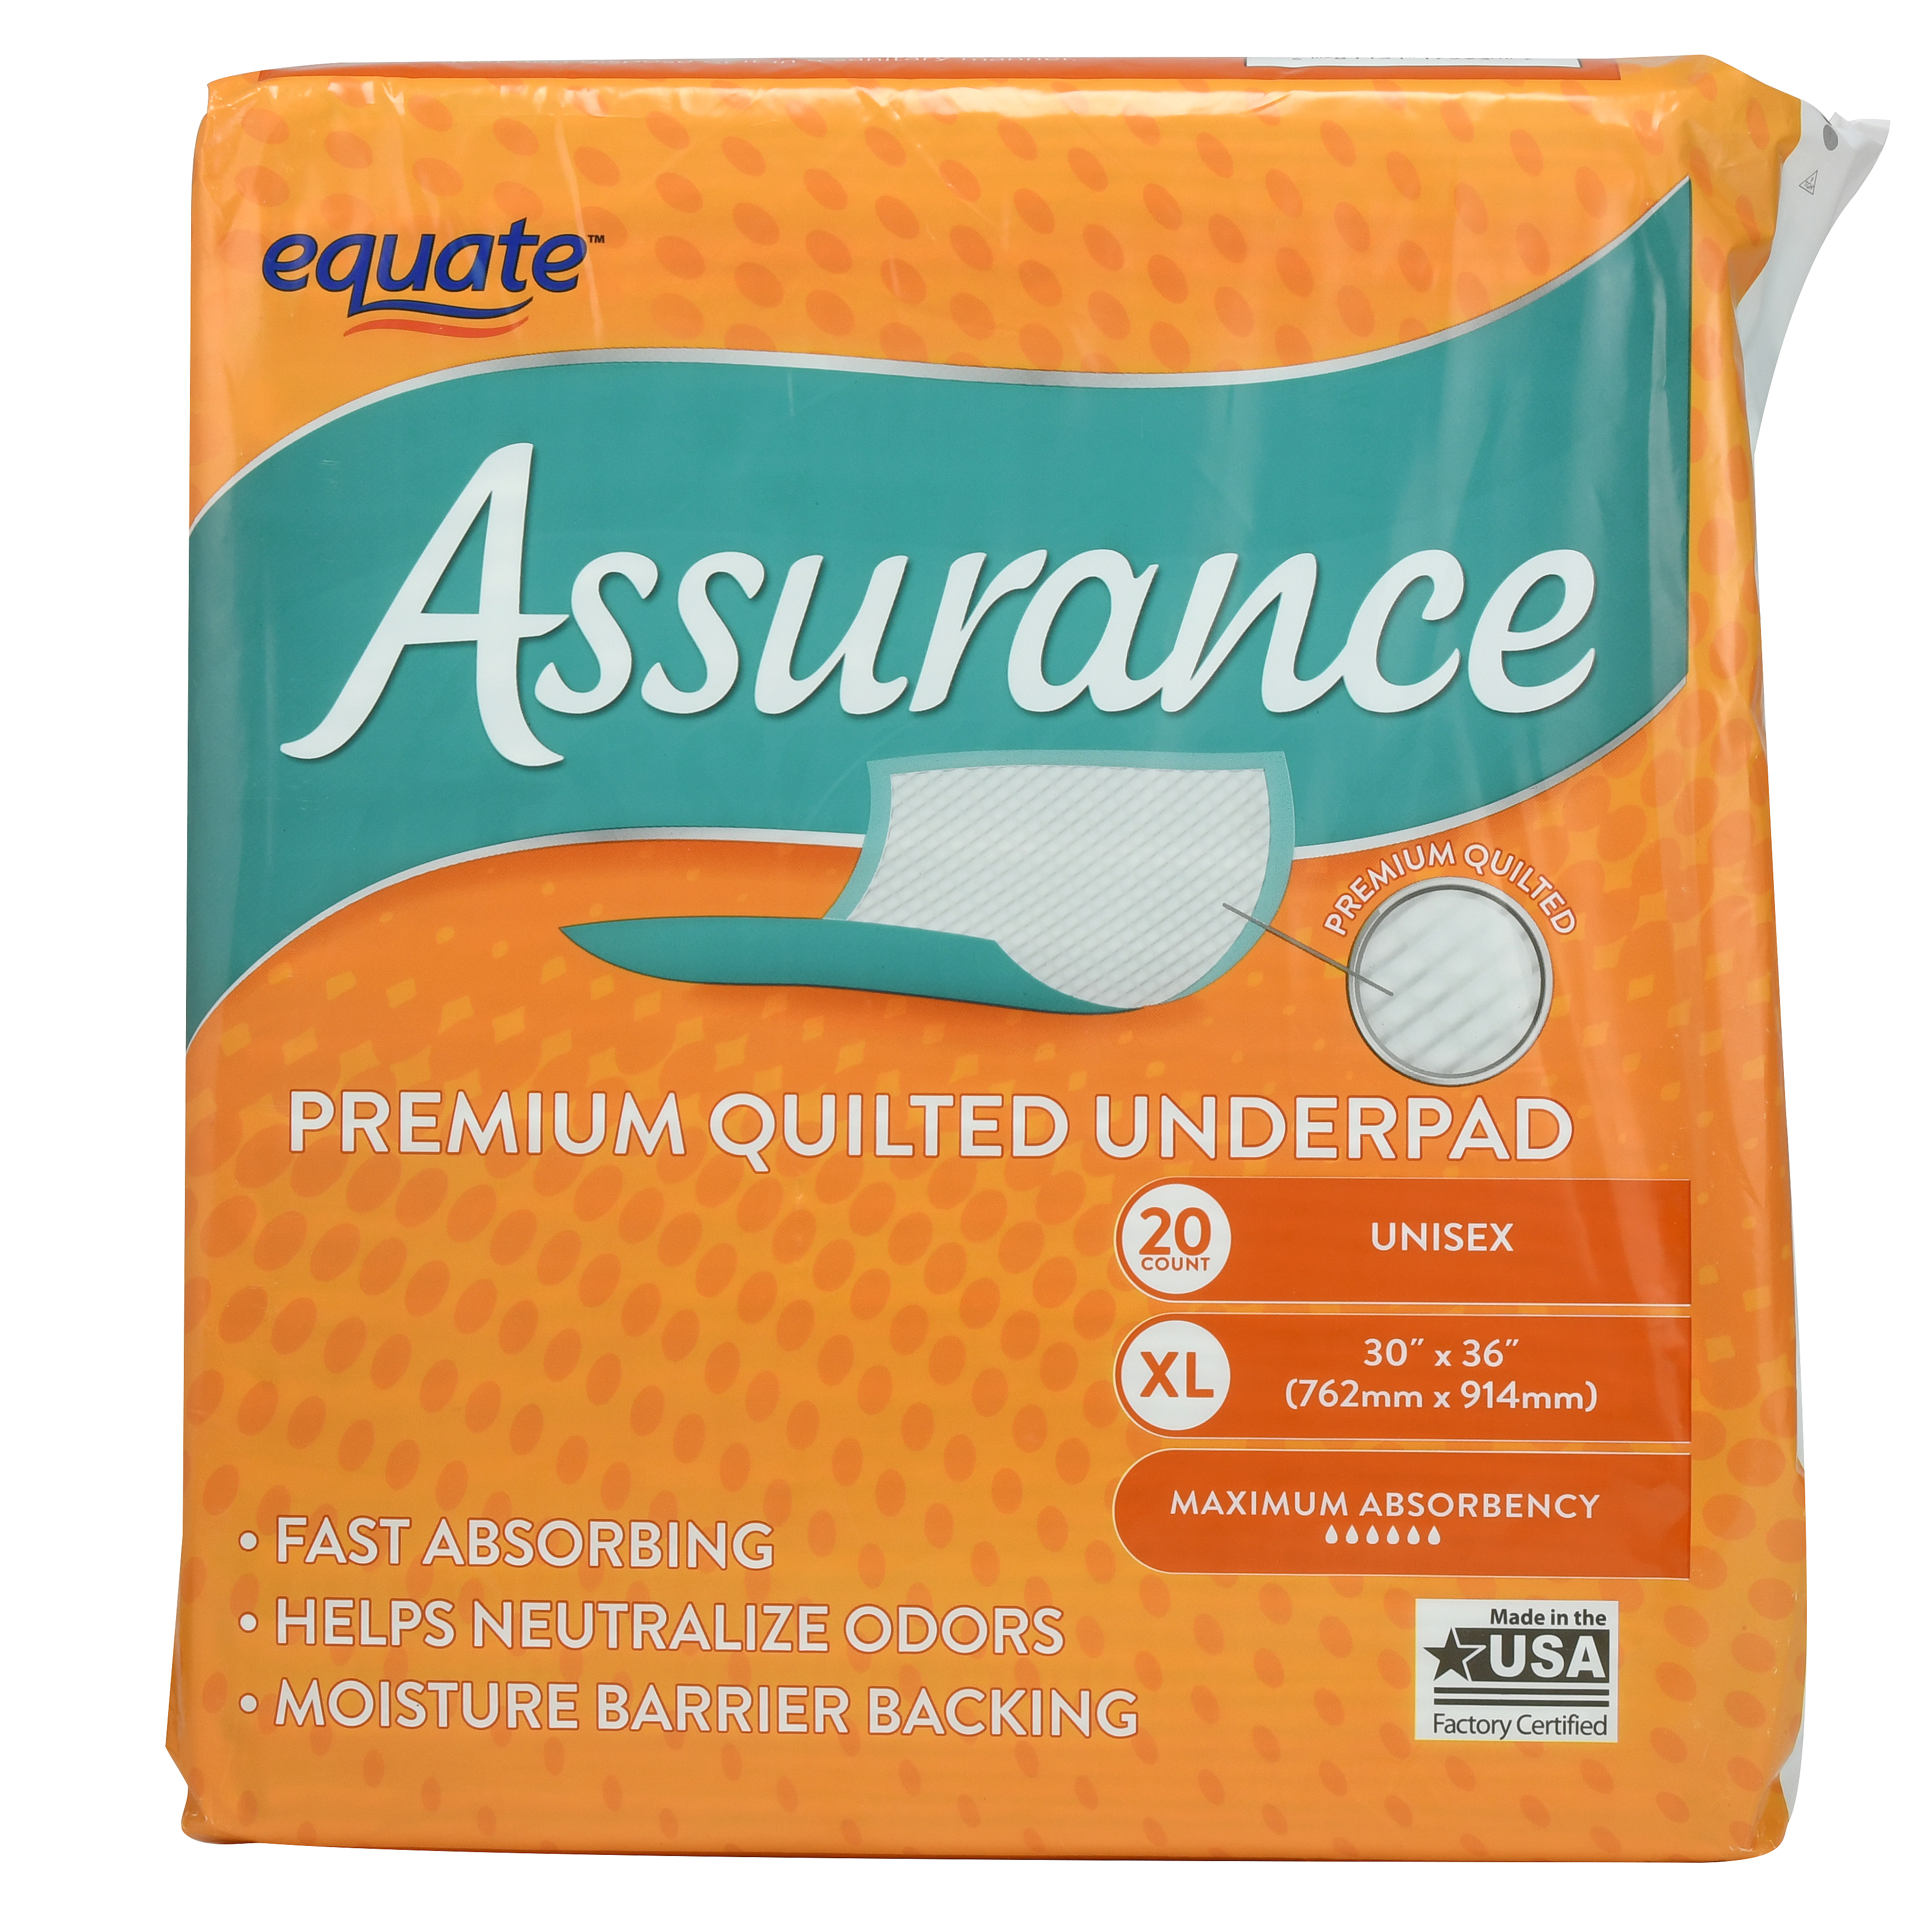 Equate Assurance Premium Quilted Underpad, XL, 20 Ct